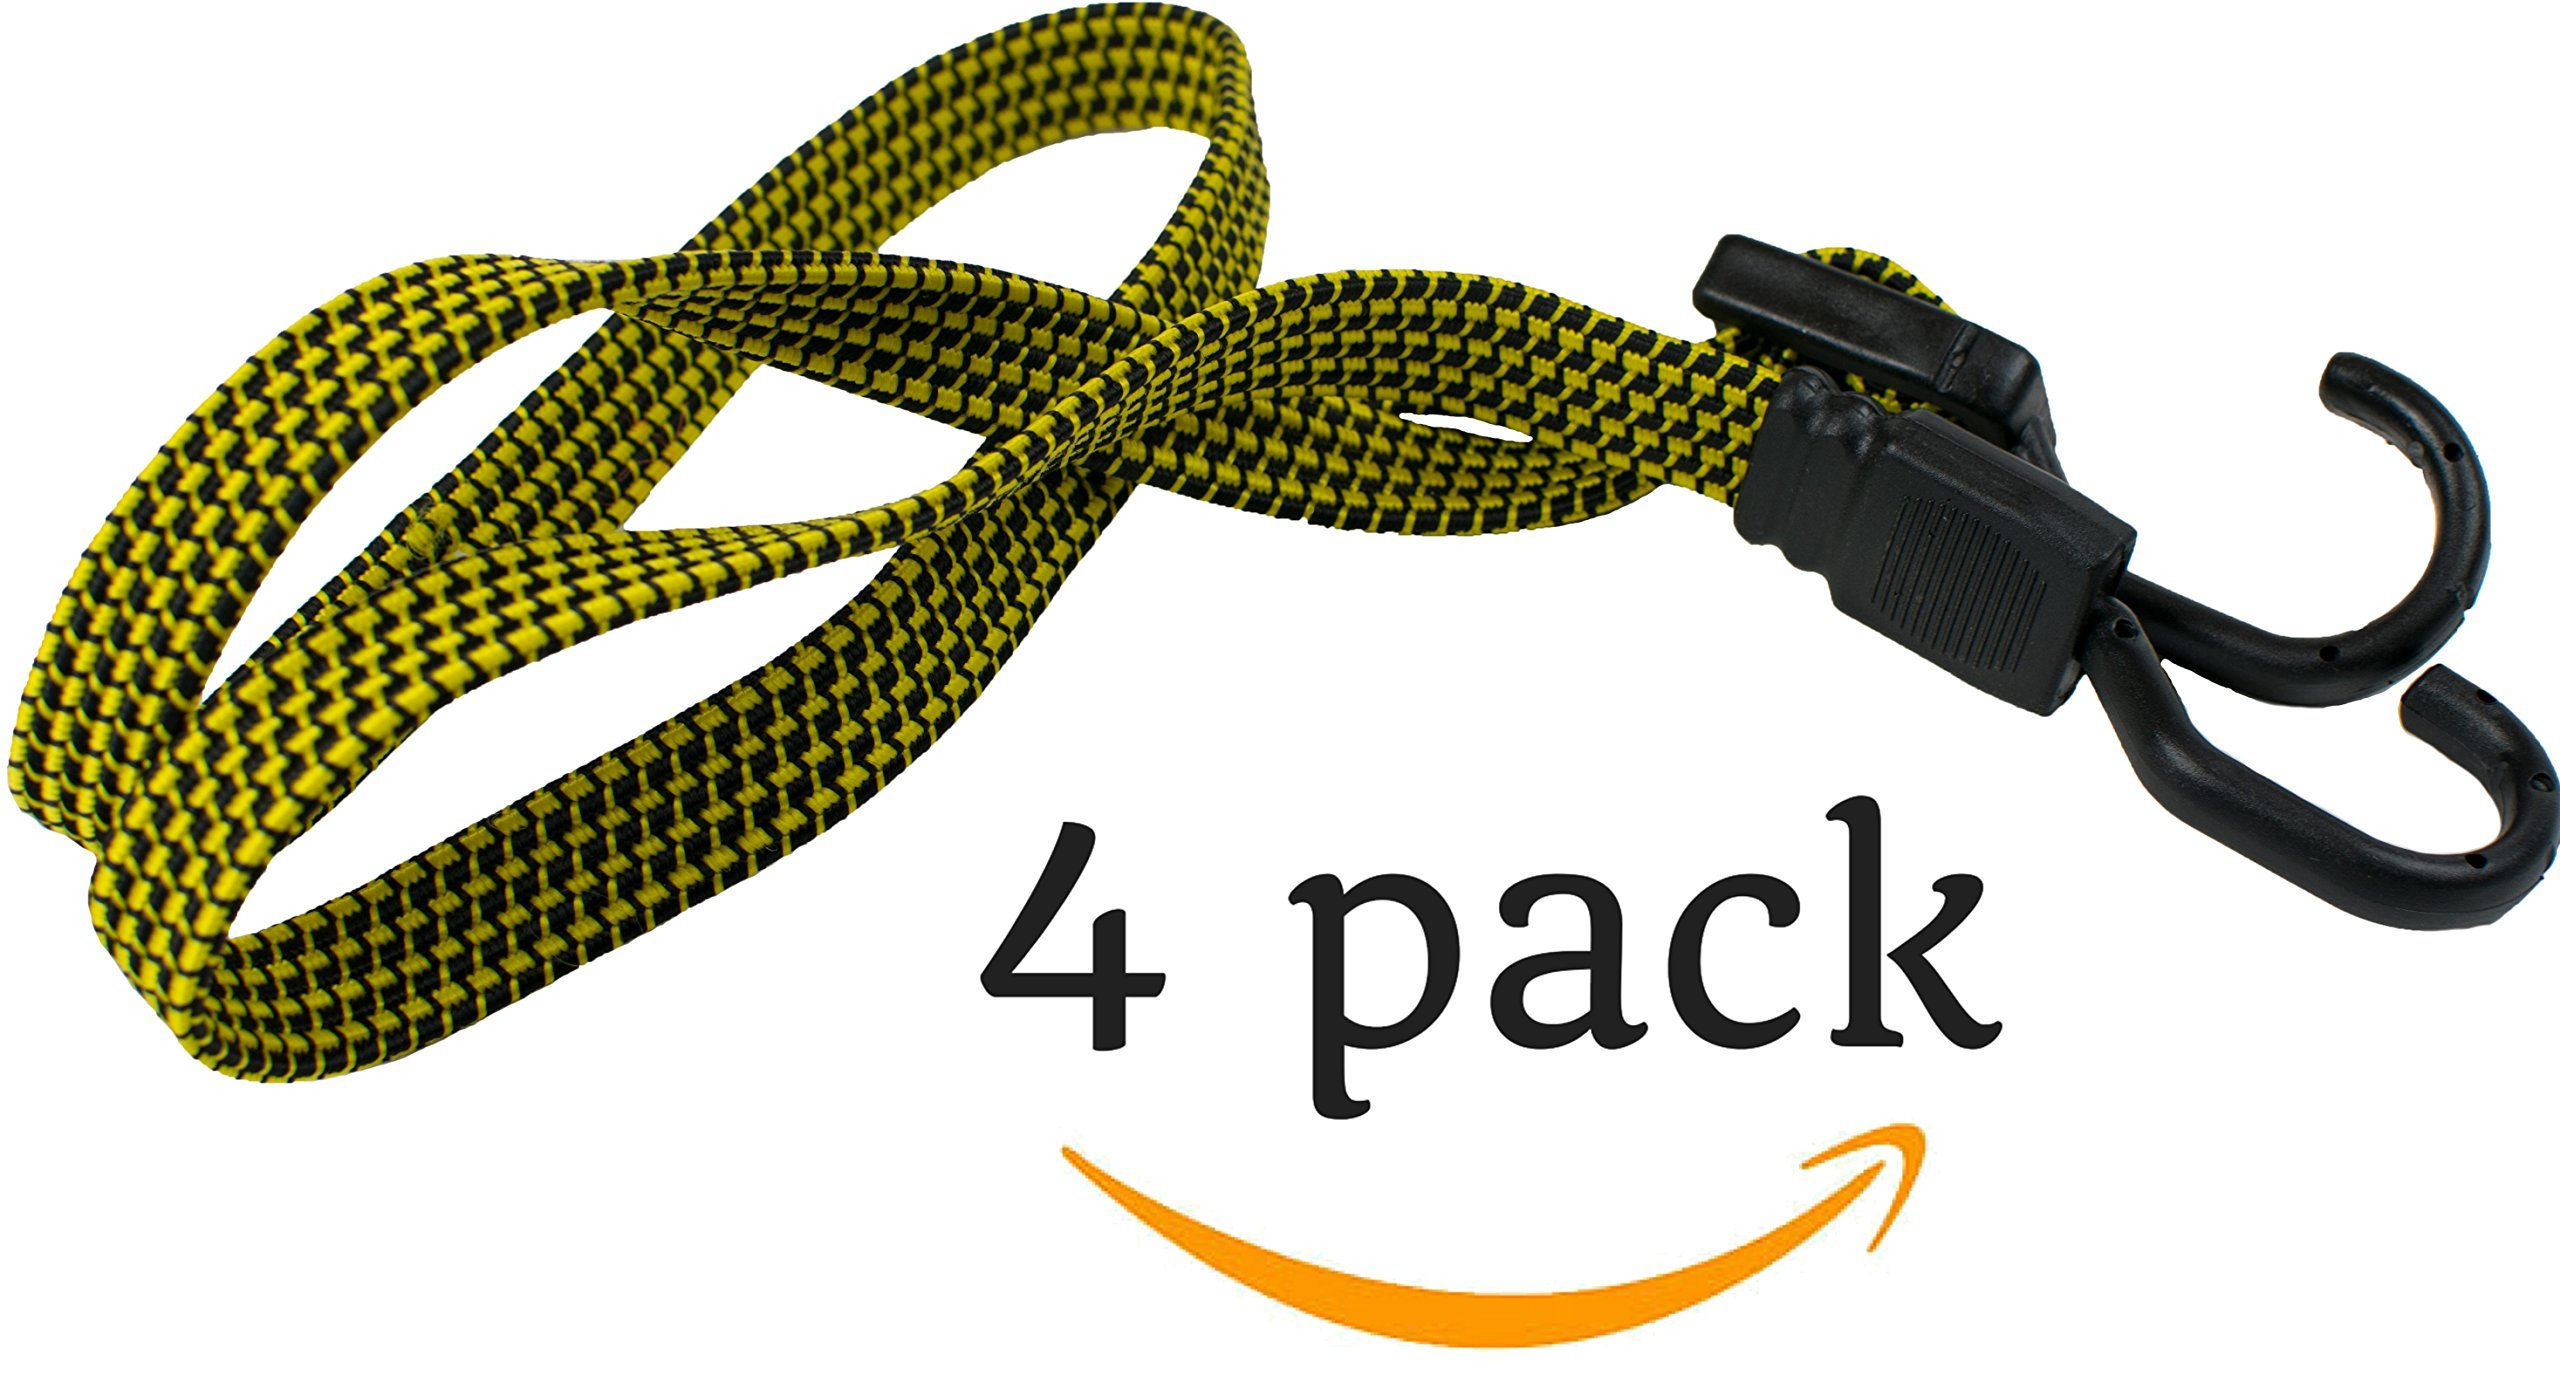 HeavyWeight Flat Bungee Cords 4 PACK with BONUS 4 Ball Bungees | 48'' INCH Total Length with Adjustable Length Hooks | Hand Carts, Dolly, Cargo, Moving, Camping, RV, Trunk, Luggage Rack, Tarp Tie Down by Heavy Weight (Image #1)